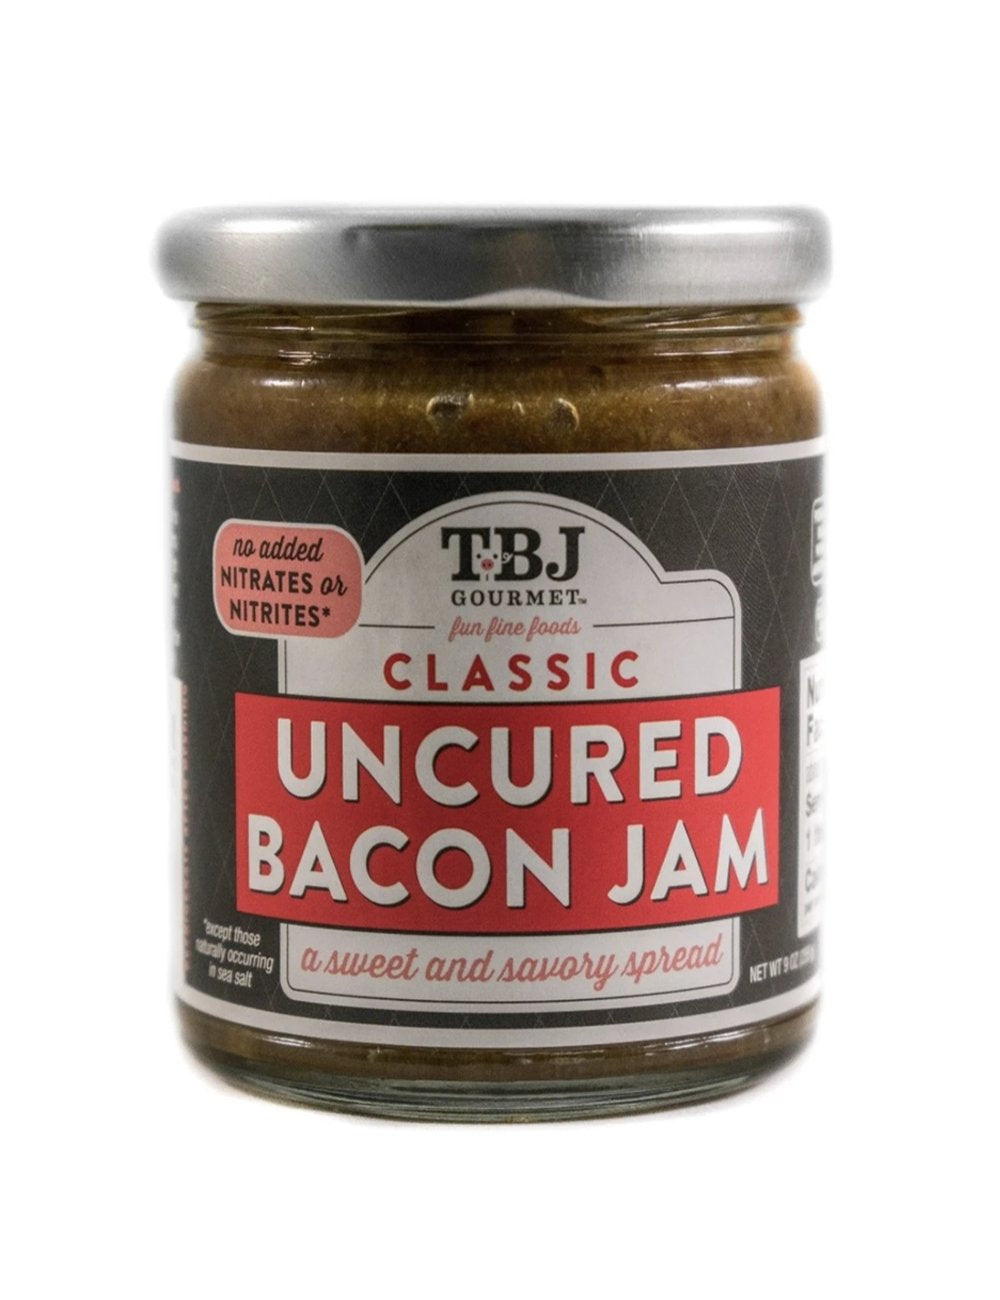 TBJ Uncured Bacon Jam 14 oz